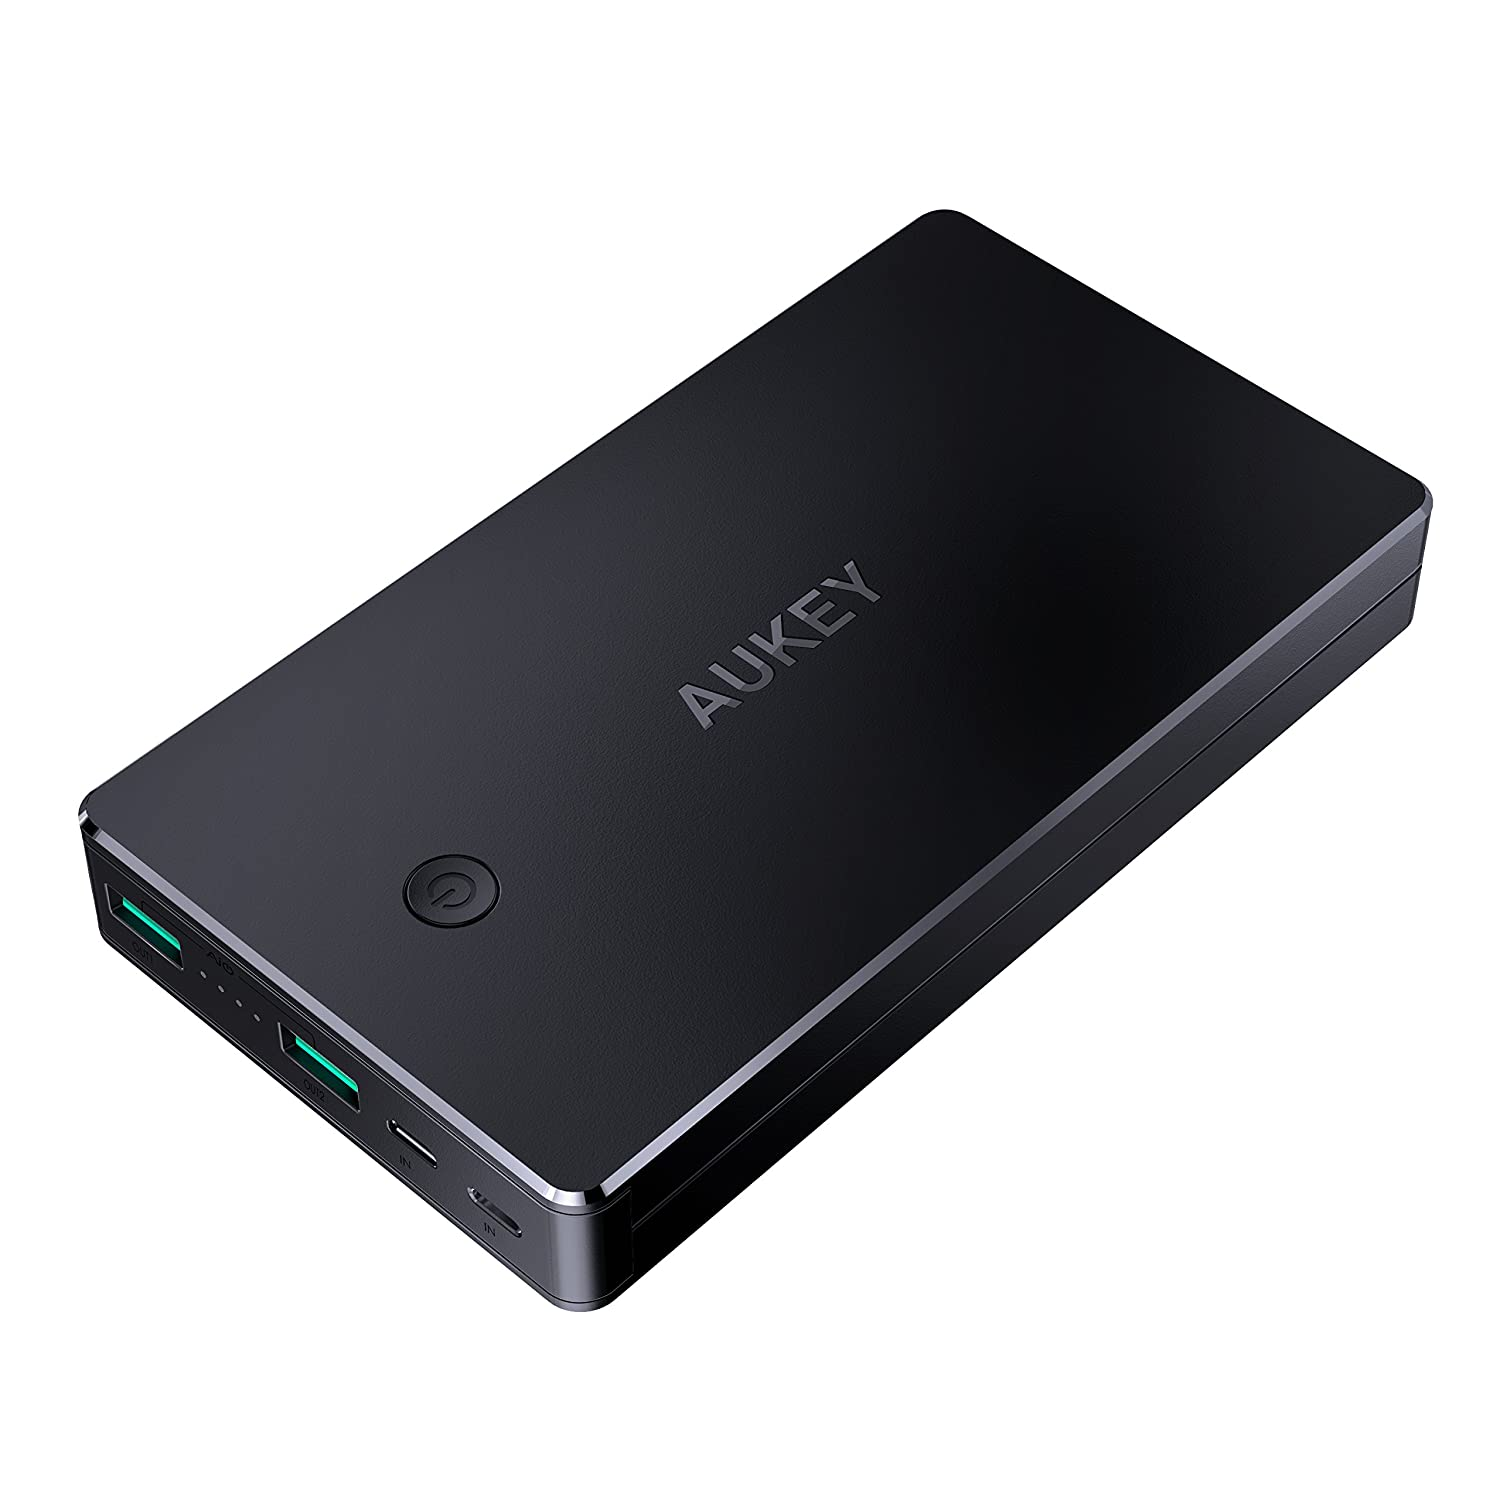 AUKEY 20000mAh Power Bank with Lightning & Micro Input Portable Charger, 3.4A Dual-USB Output Battery Pack for iPhone X/8/Plus, iPad Pro and More